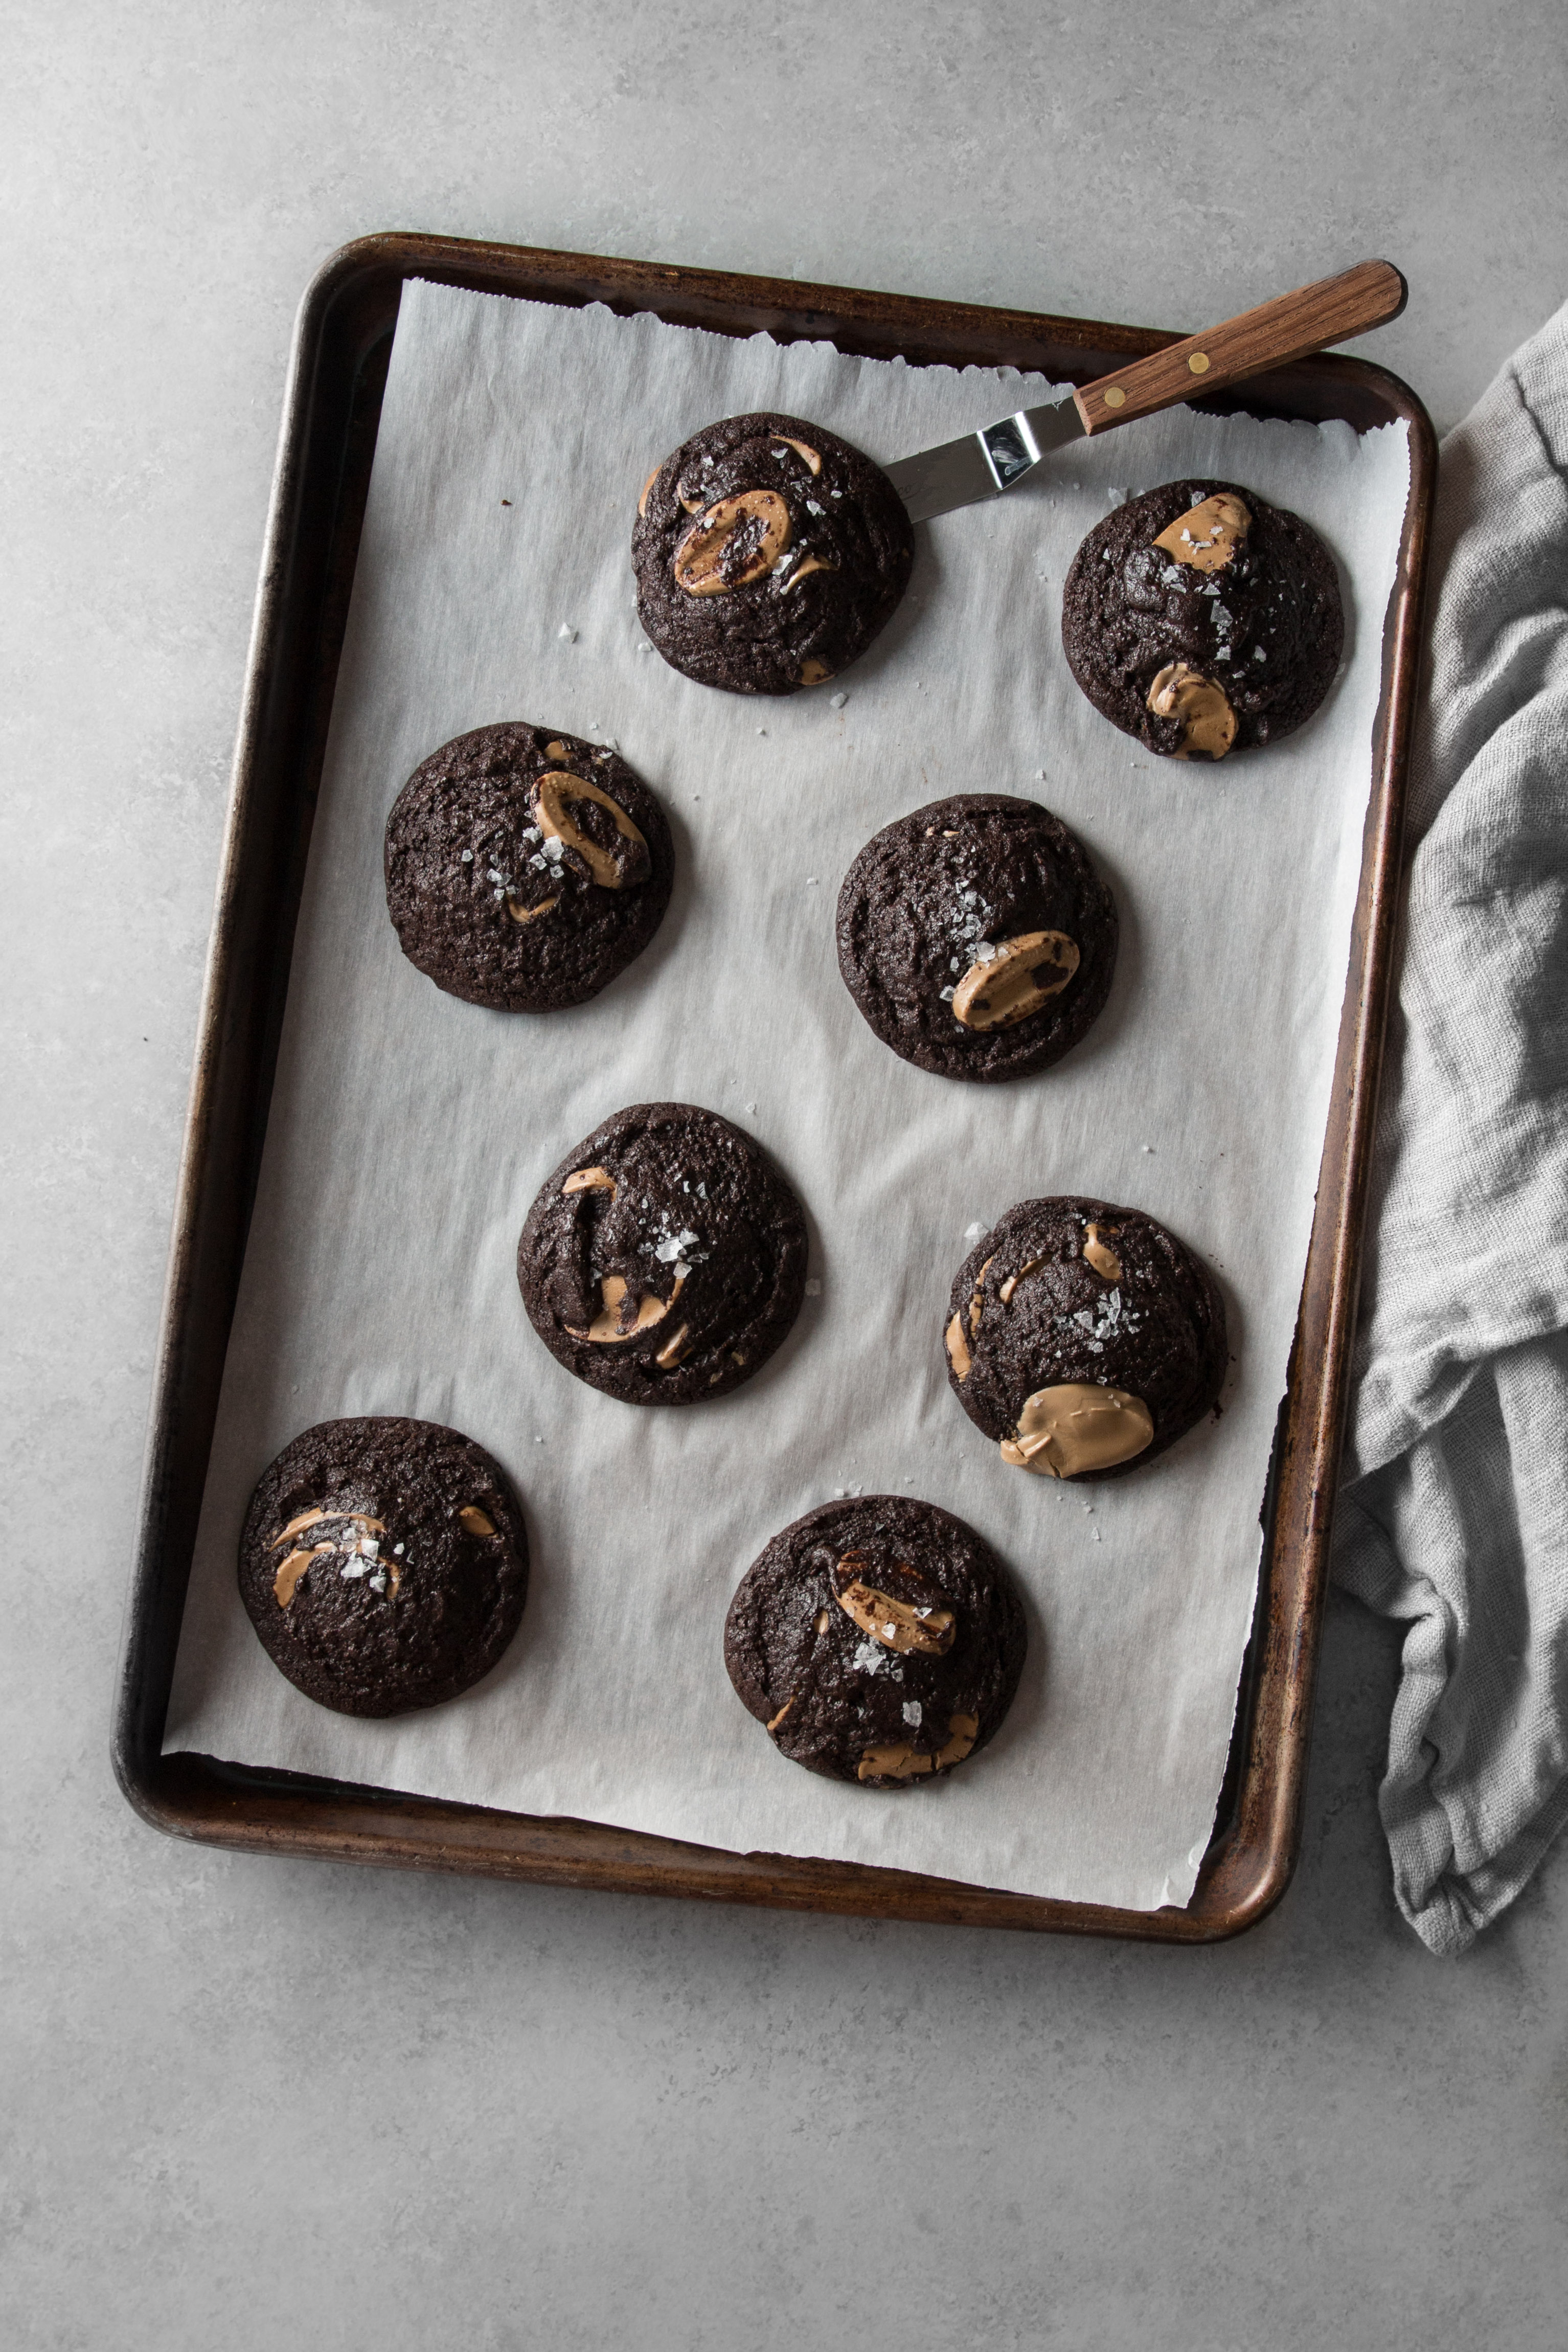 Super Dark Chocolate Cookies with Orelys Feves & Sea Salt | I Will Not Eat Oysters Recipe